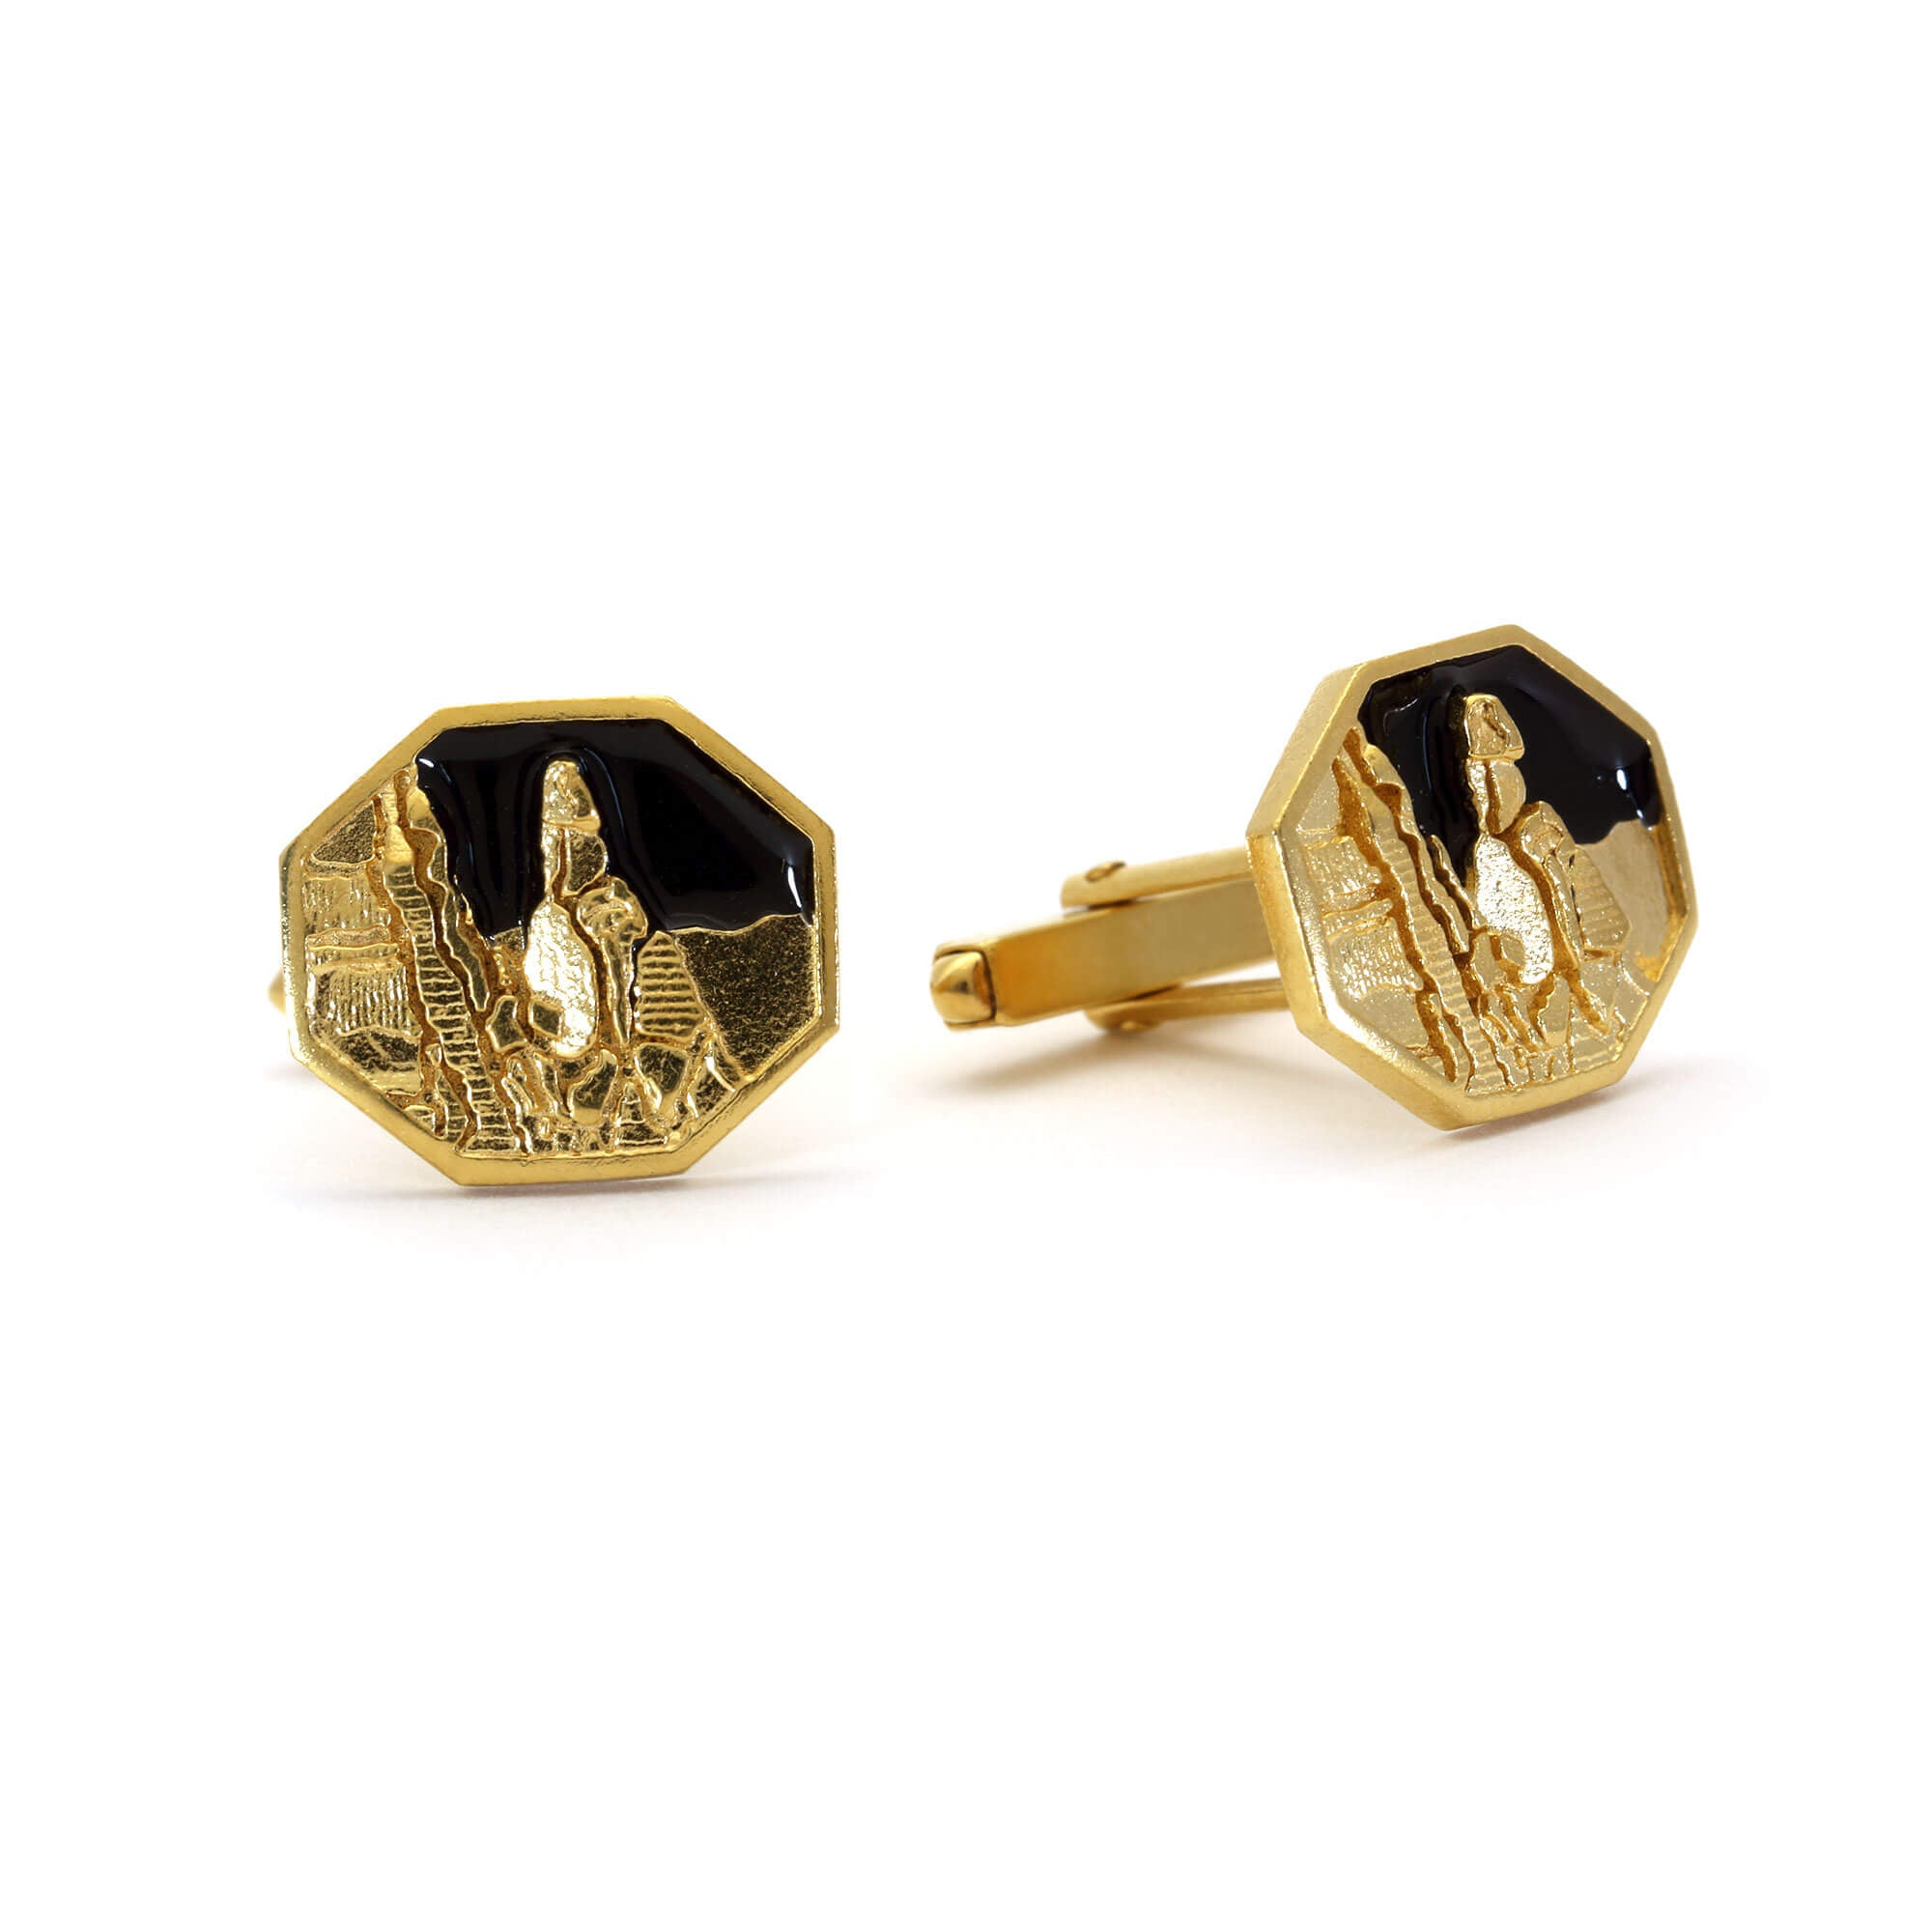 A pair of cufflinks picturing Napes Needle in gold against a black enamel sky